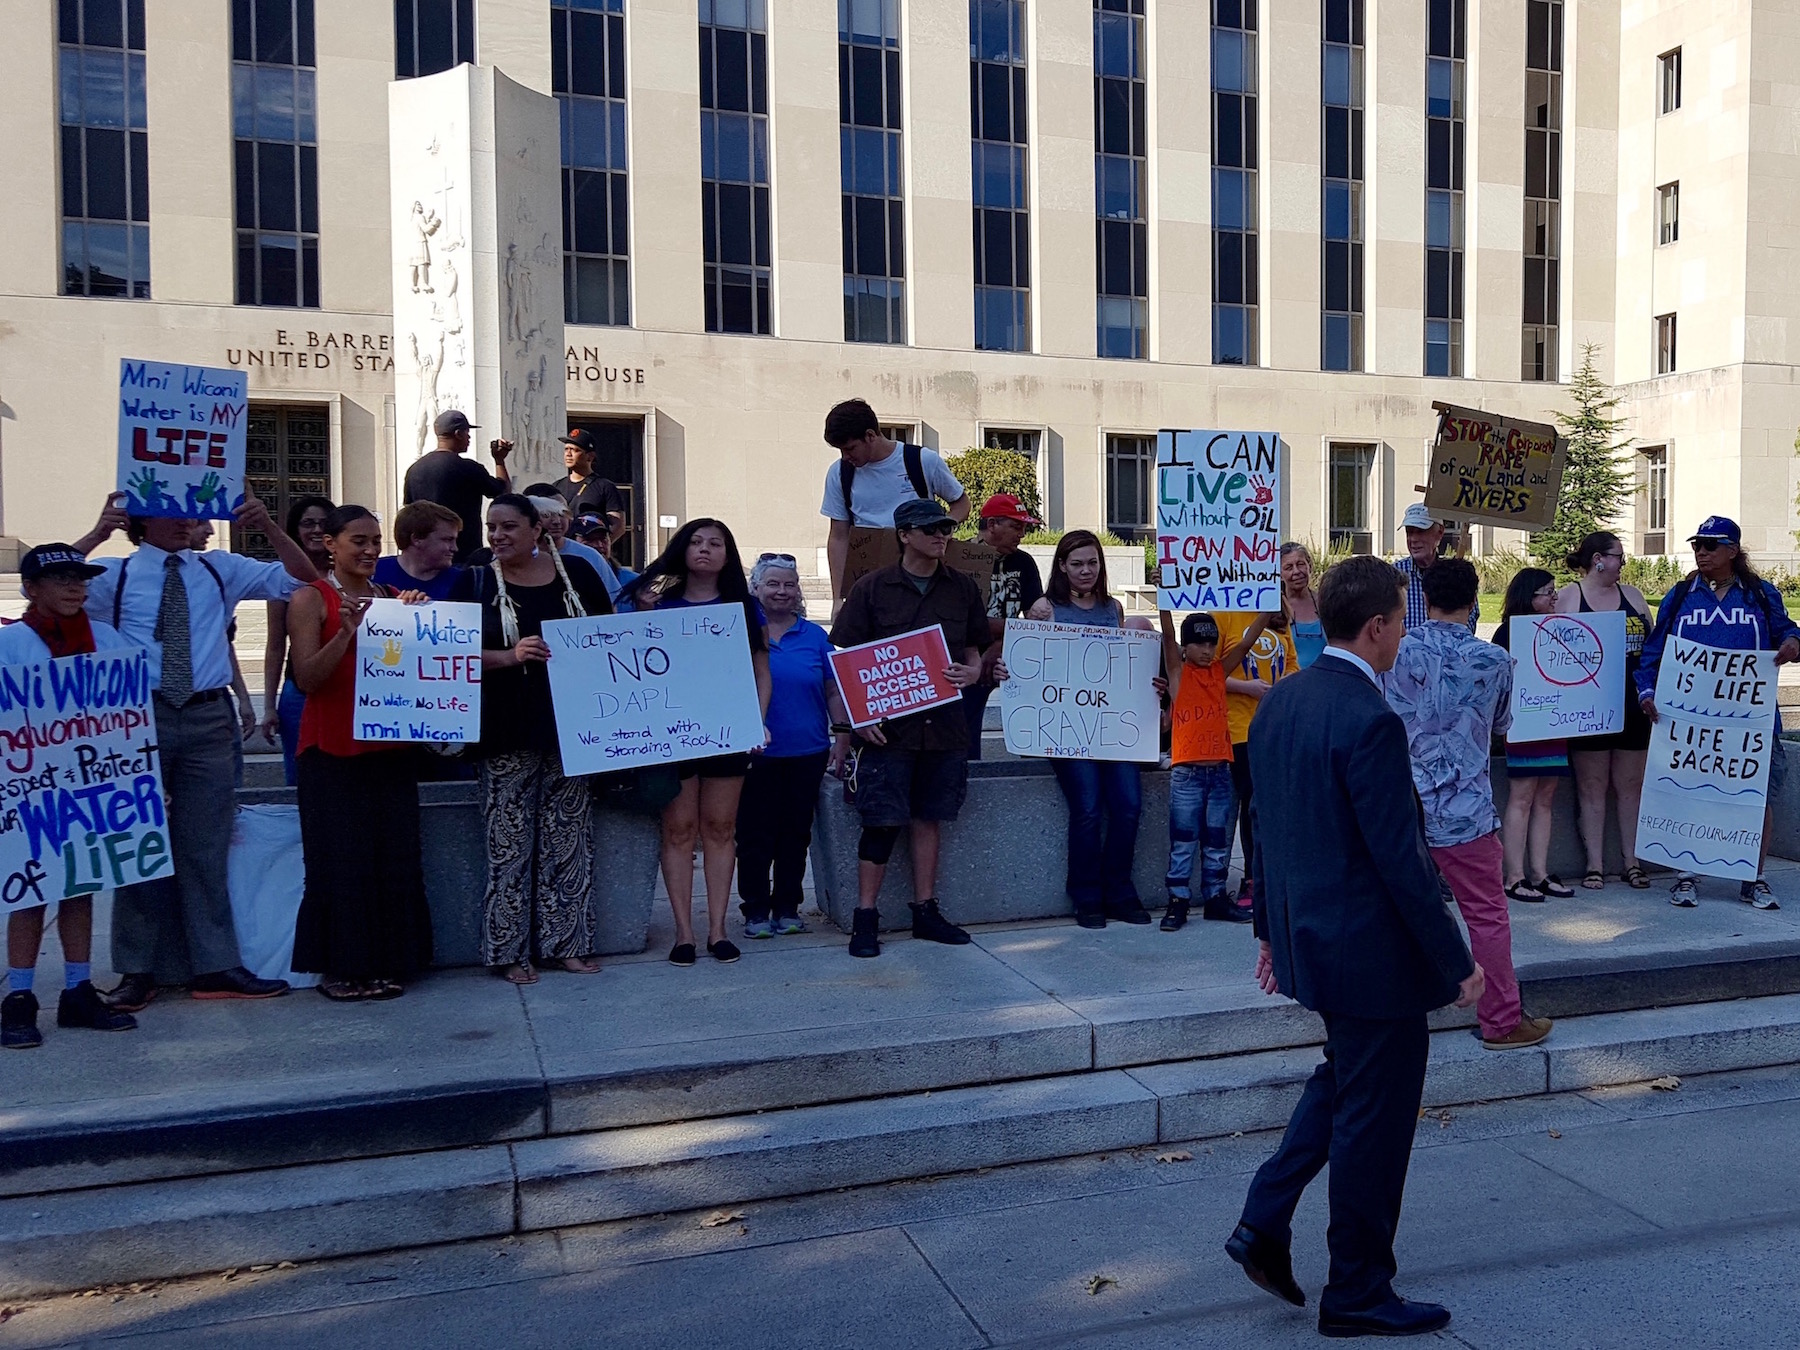 Mark Charles: The #NoDAPL struggle continues after court hearing in DC